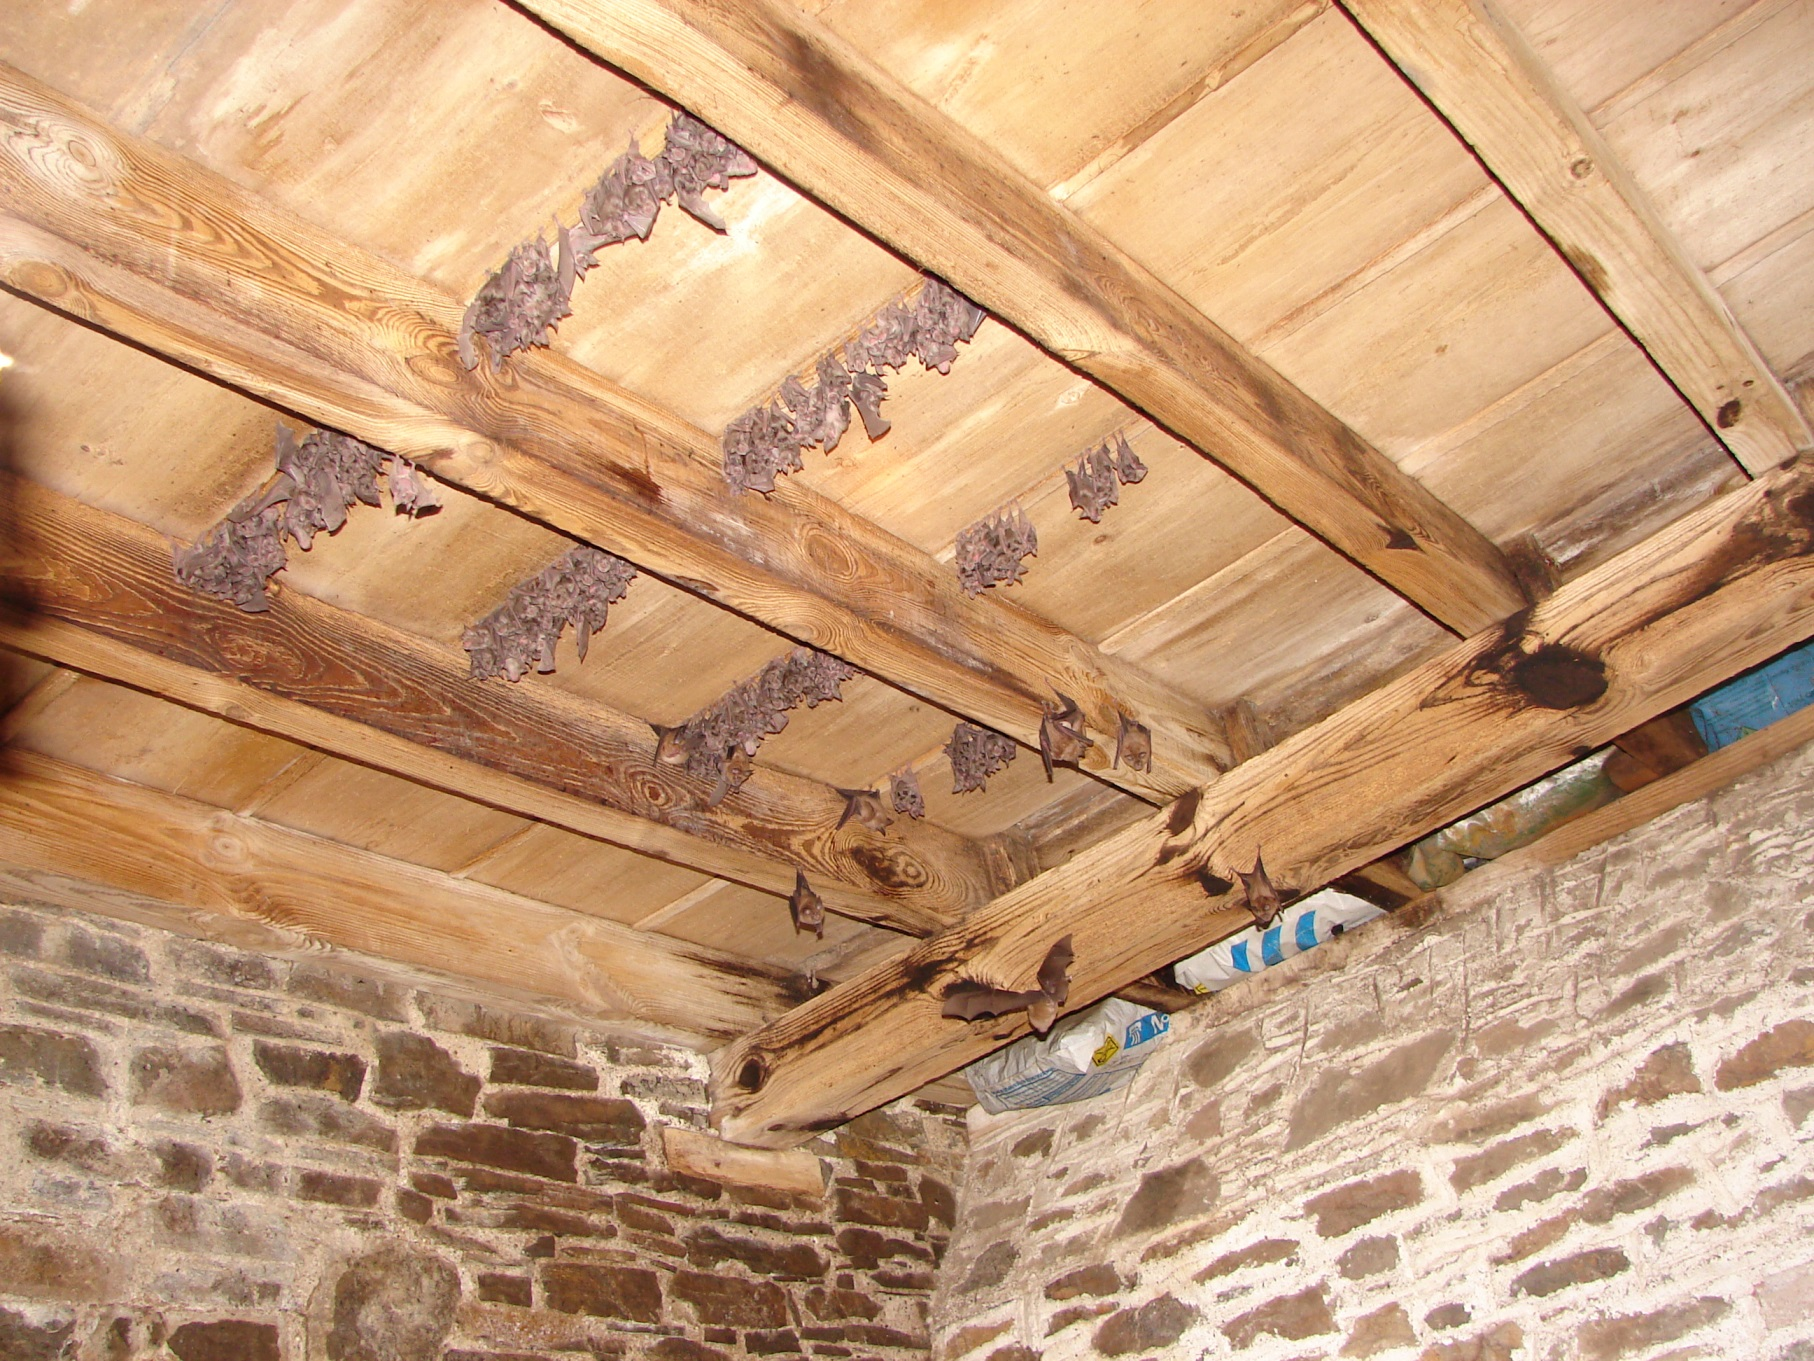 Greater horseshoe bats roosting in a barn. With your support we can build a new roost to replace a structure that will soon be unusable as a roost.